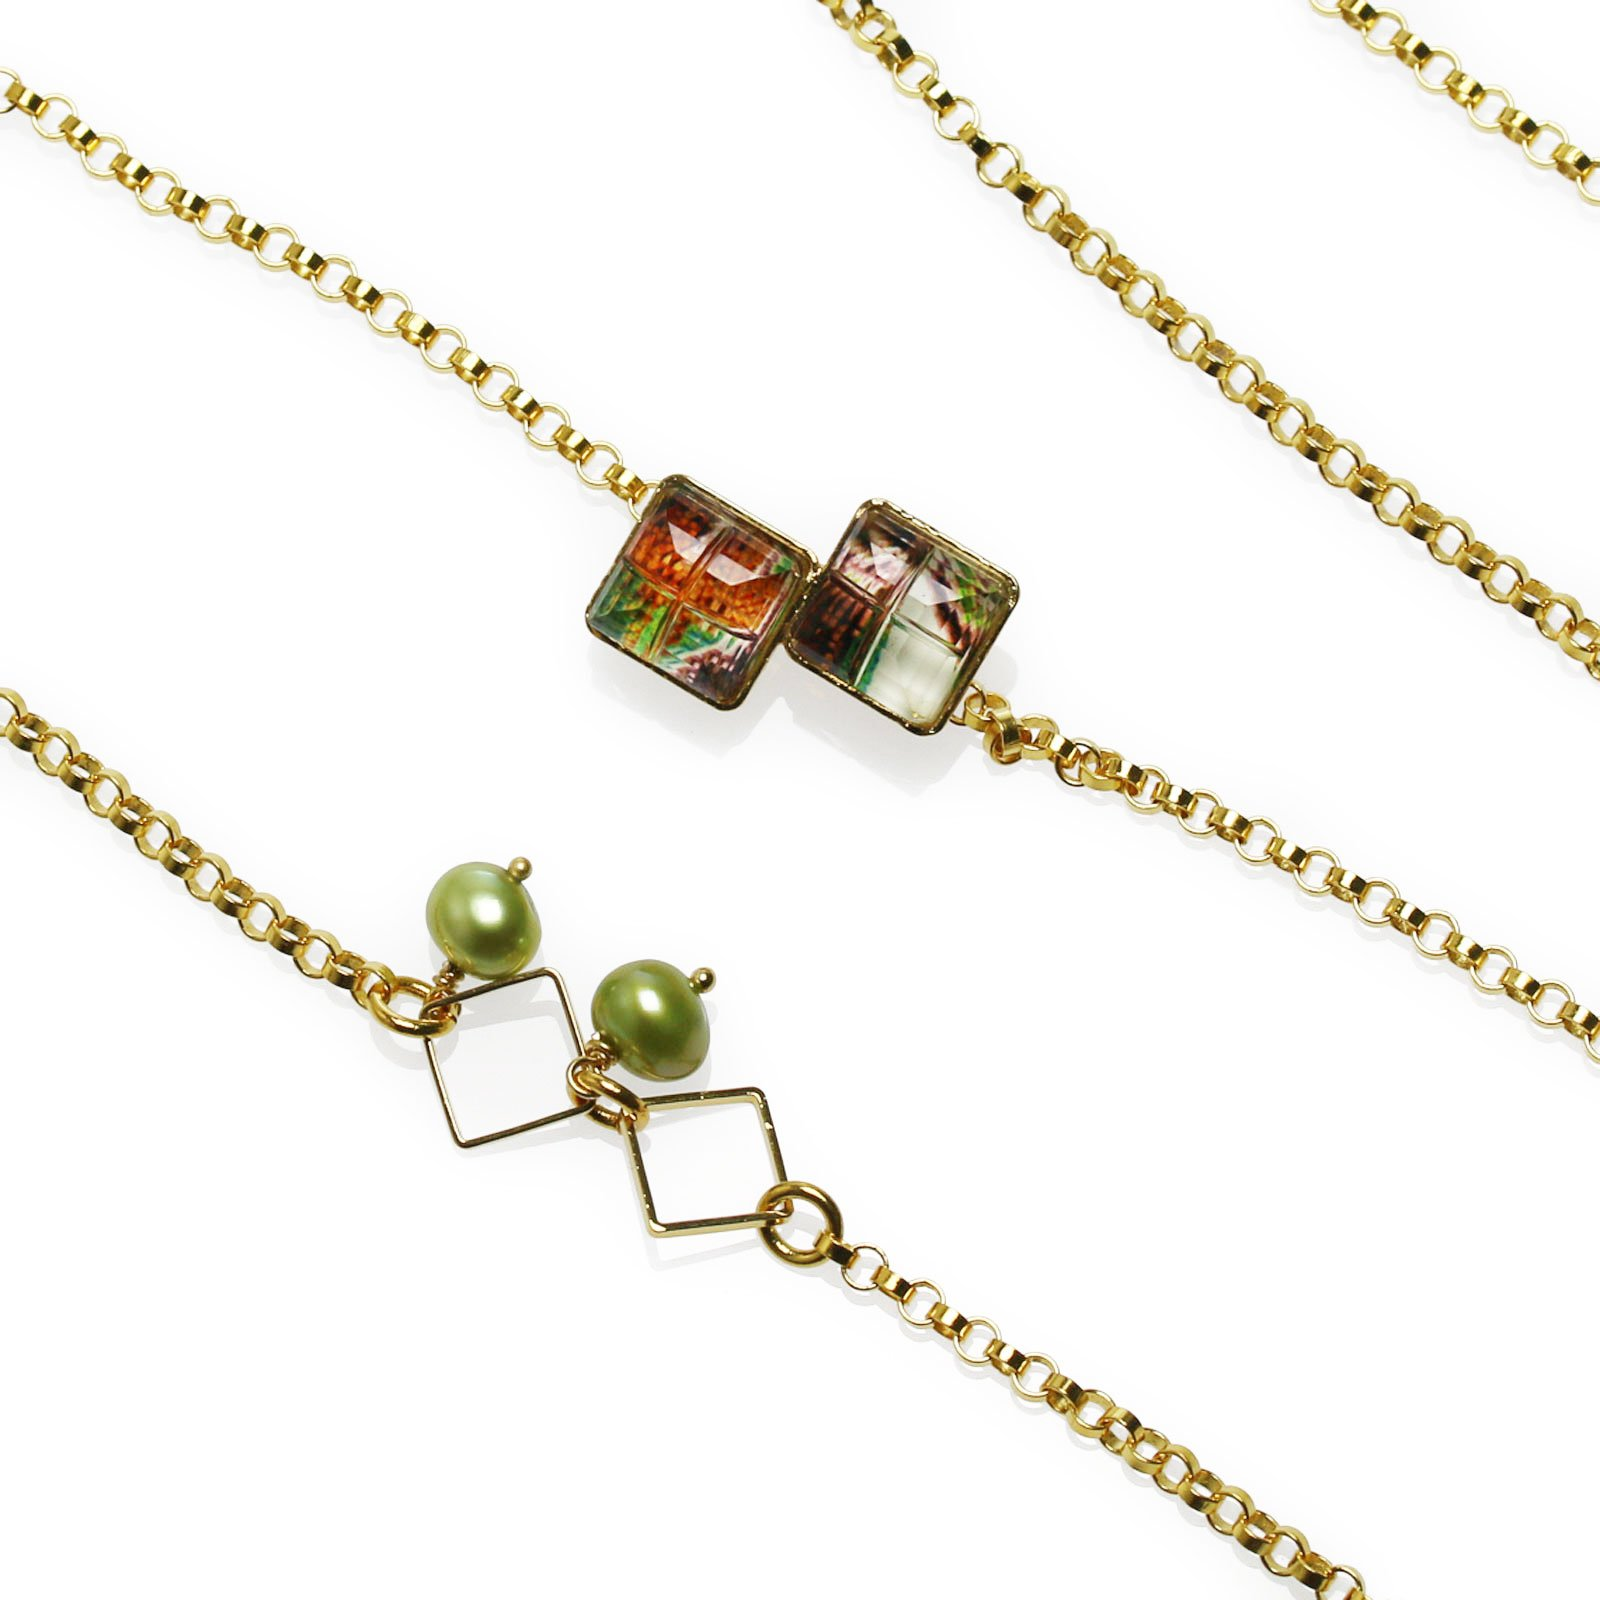 Tamarusan Glasses Chain Freshwater Pearl Gold Pansy Golden Square by TAMARUSAN